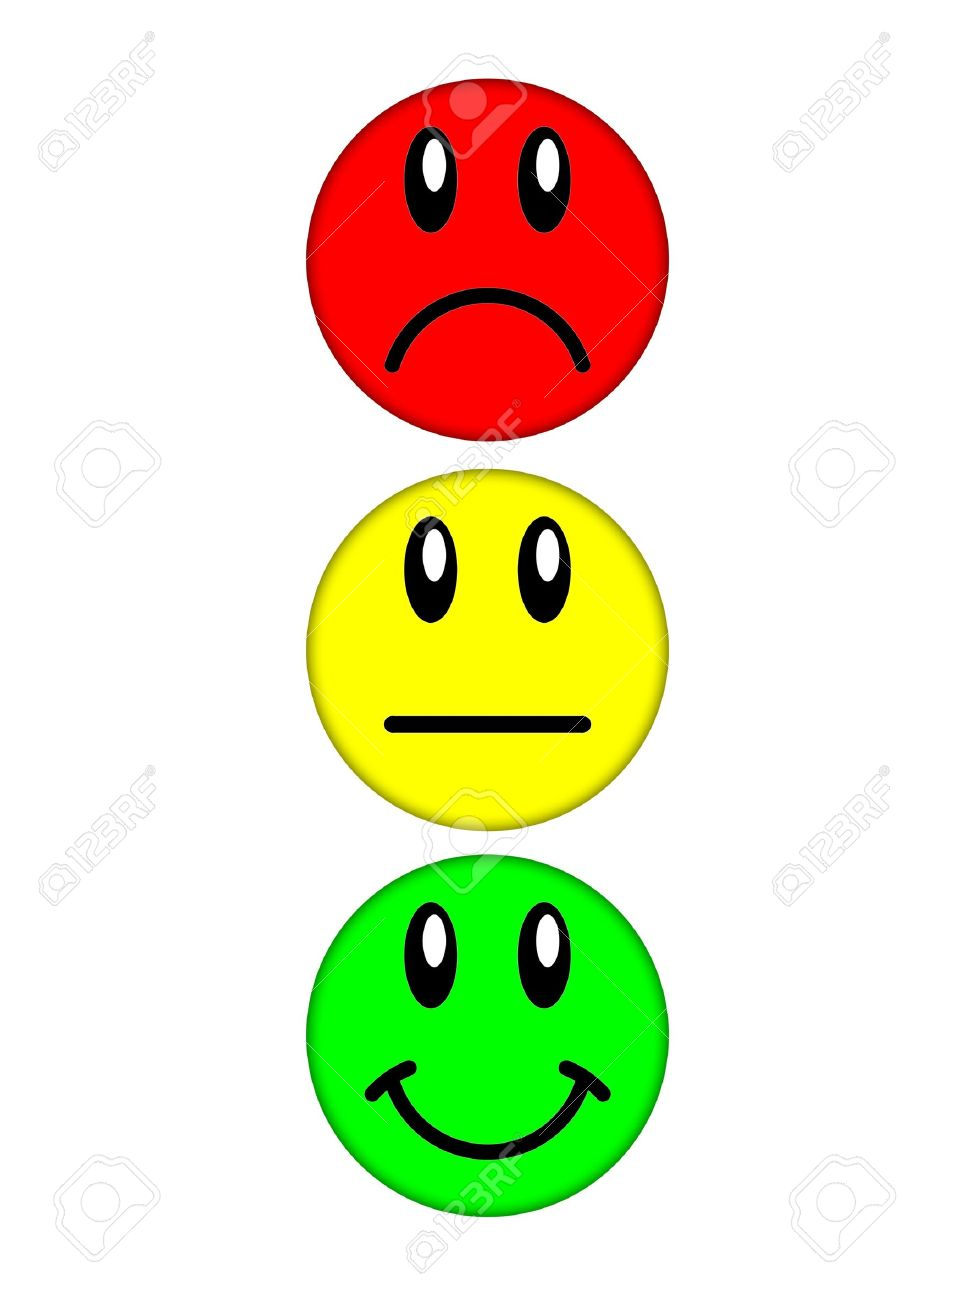 9575799-smiley-faces-Stock-Photo.jpg